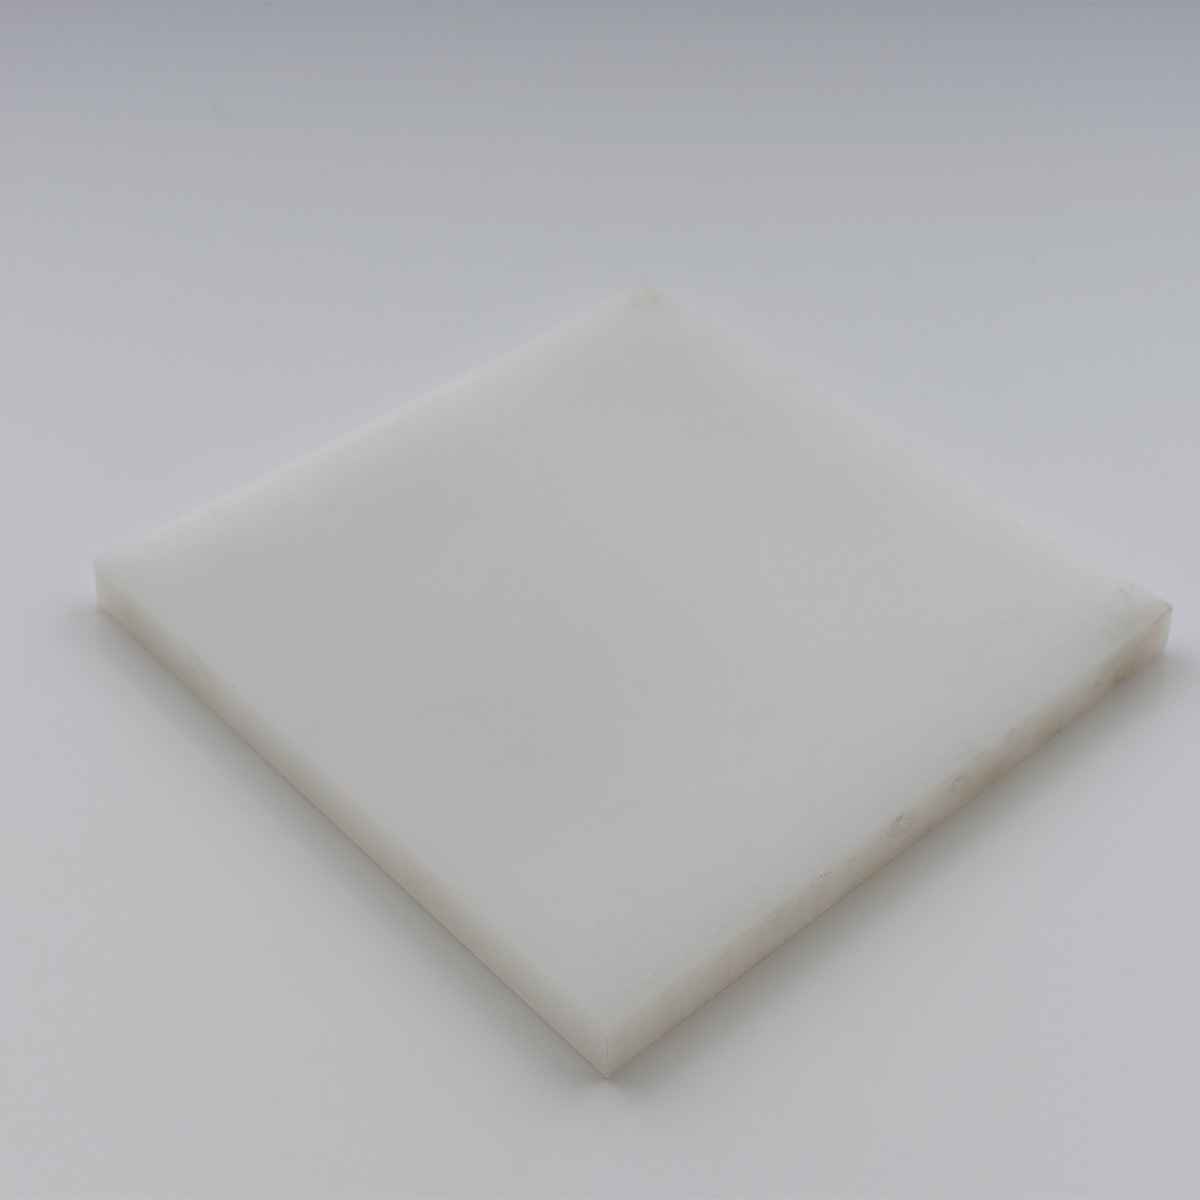 Natural High Density Polyethylene Sheet